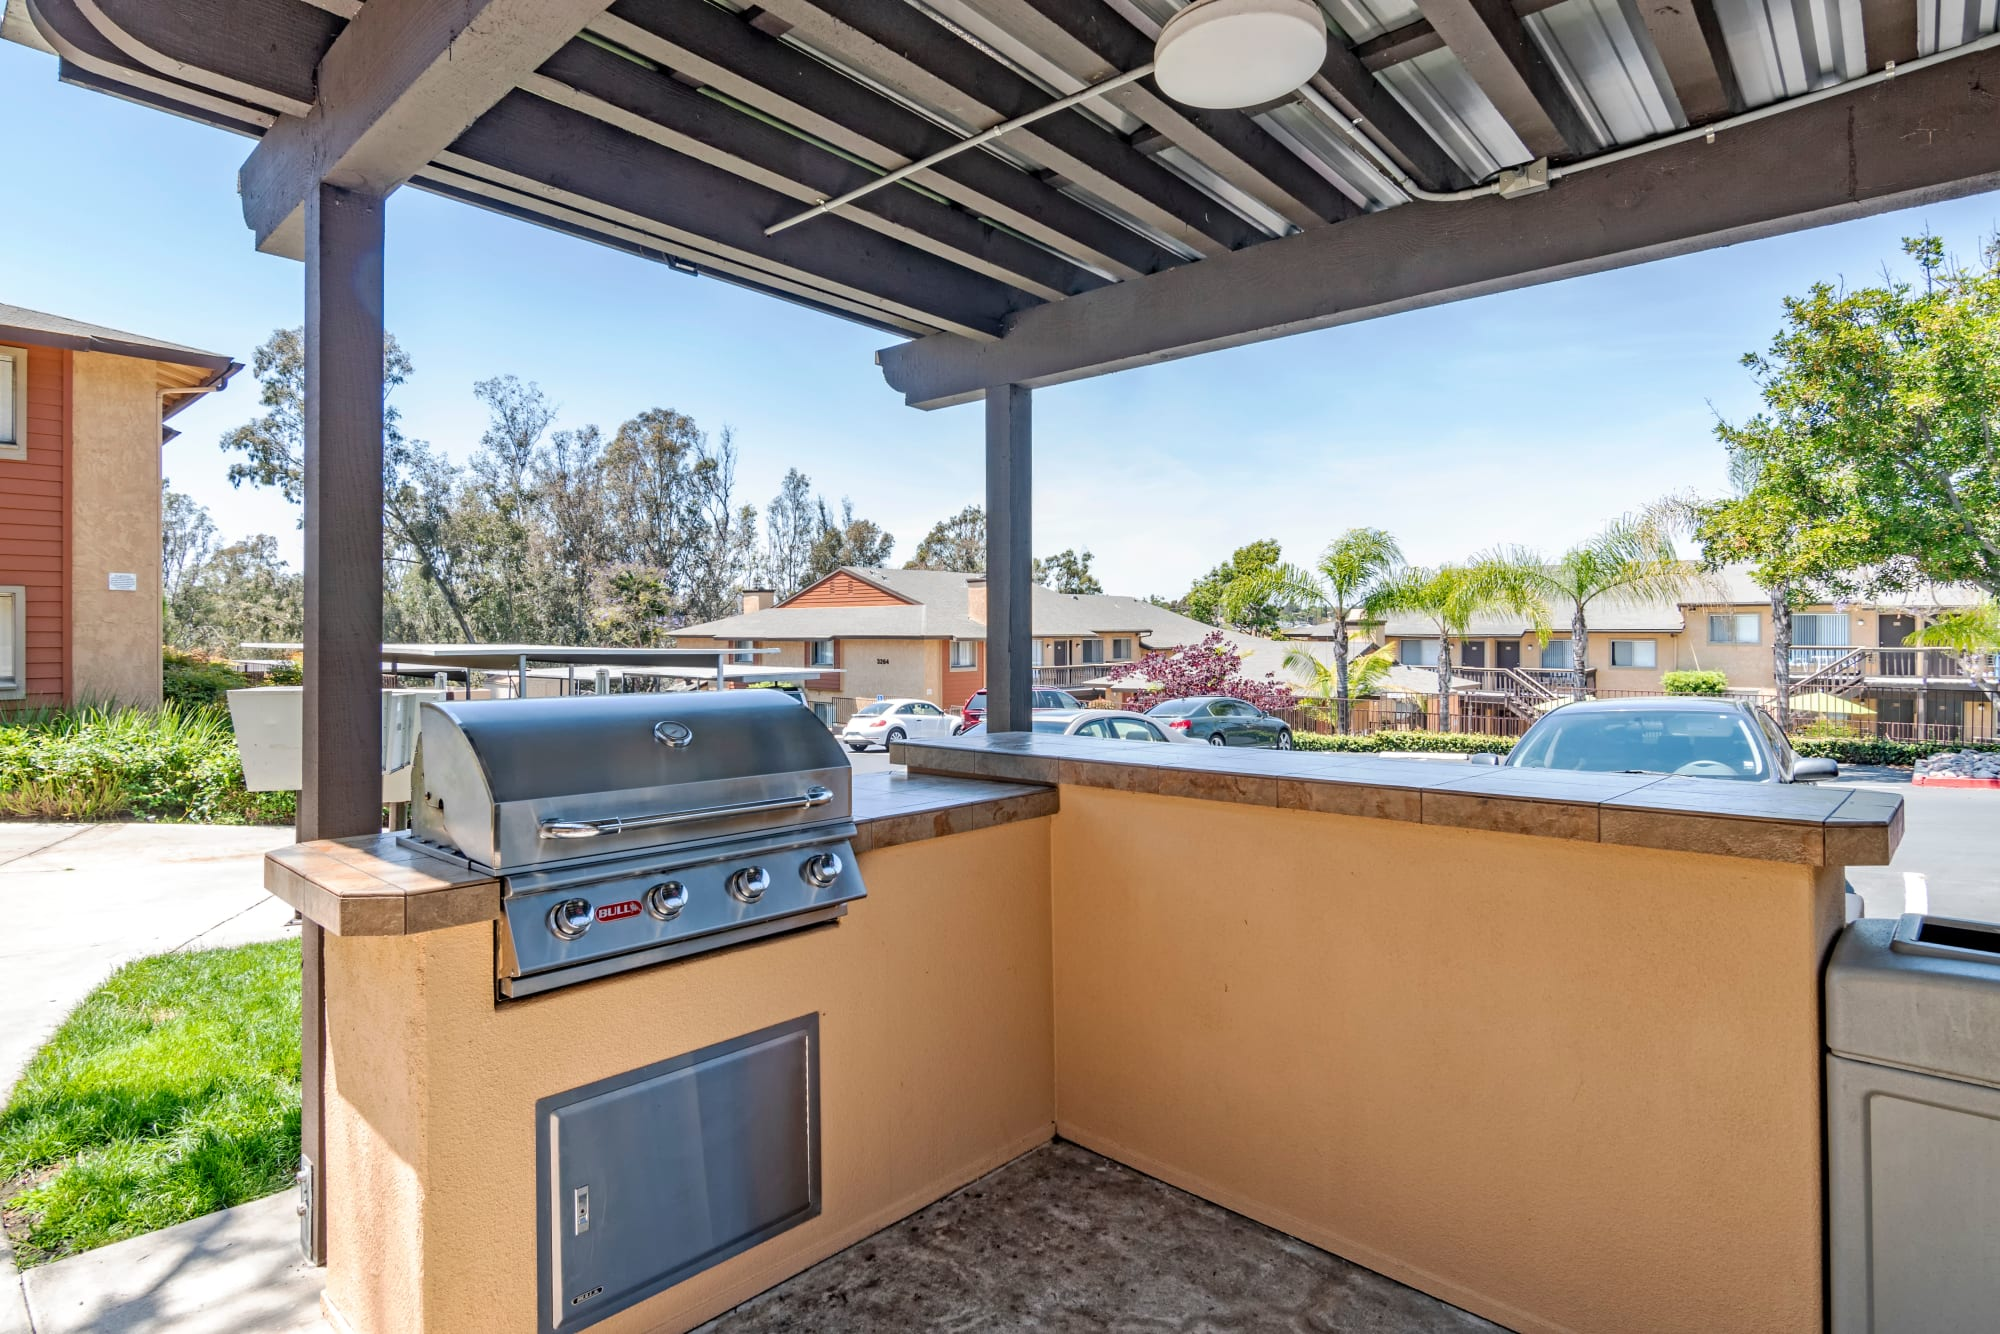 Covered outdoor BBQ area at Hillside Terrace Apartments in Lemon Grove, California